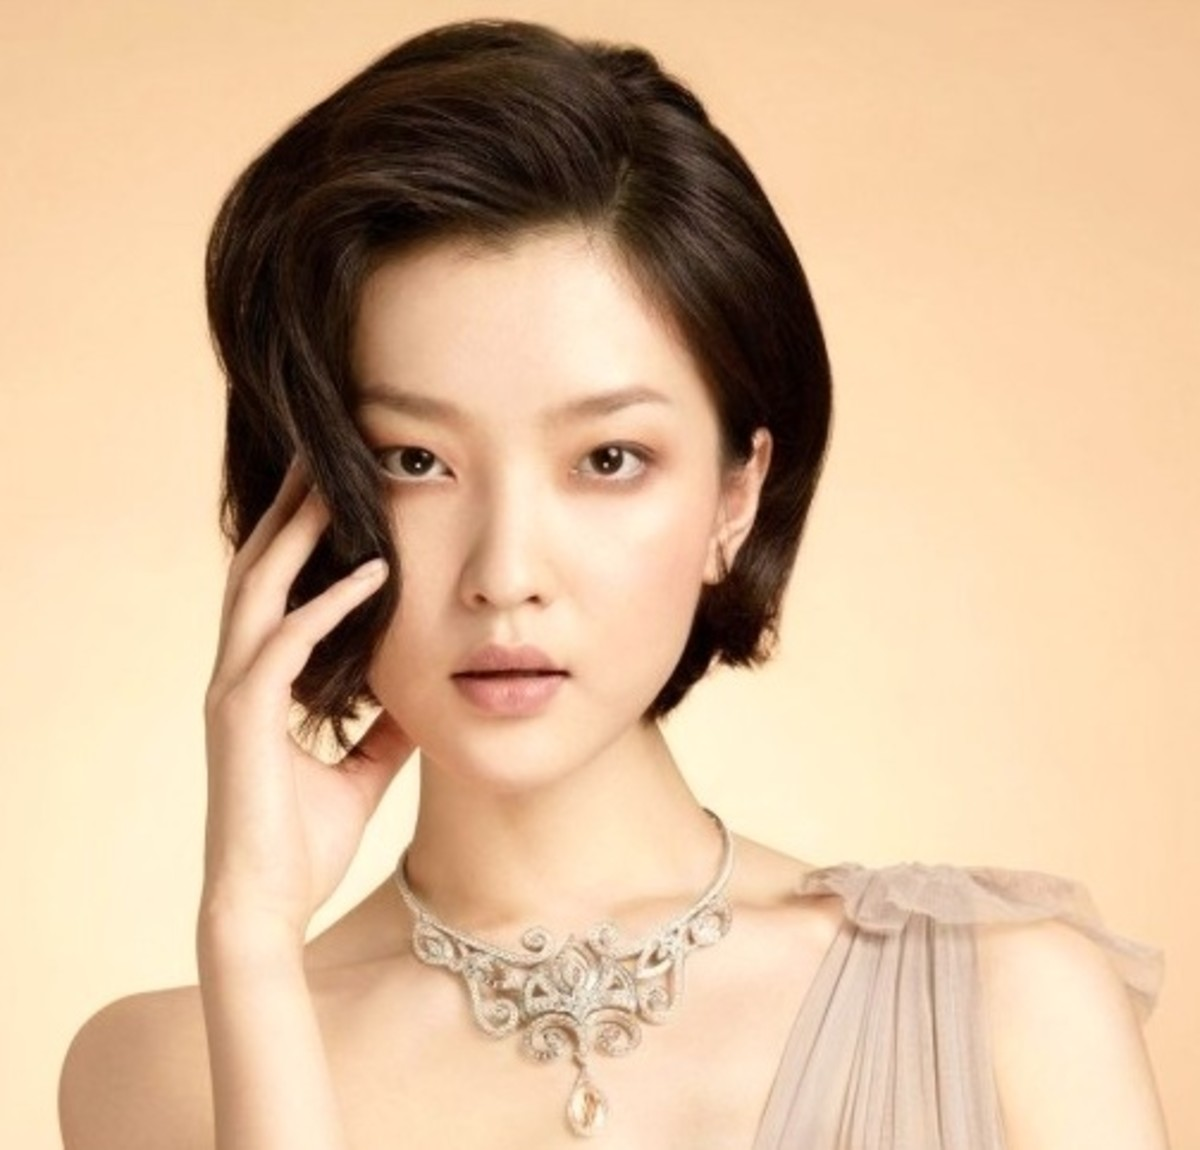 The 10 Best Summer Hairstyles for Asian Women. The chin length side part bob.